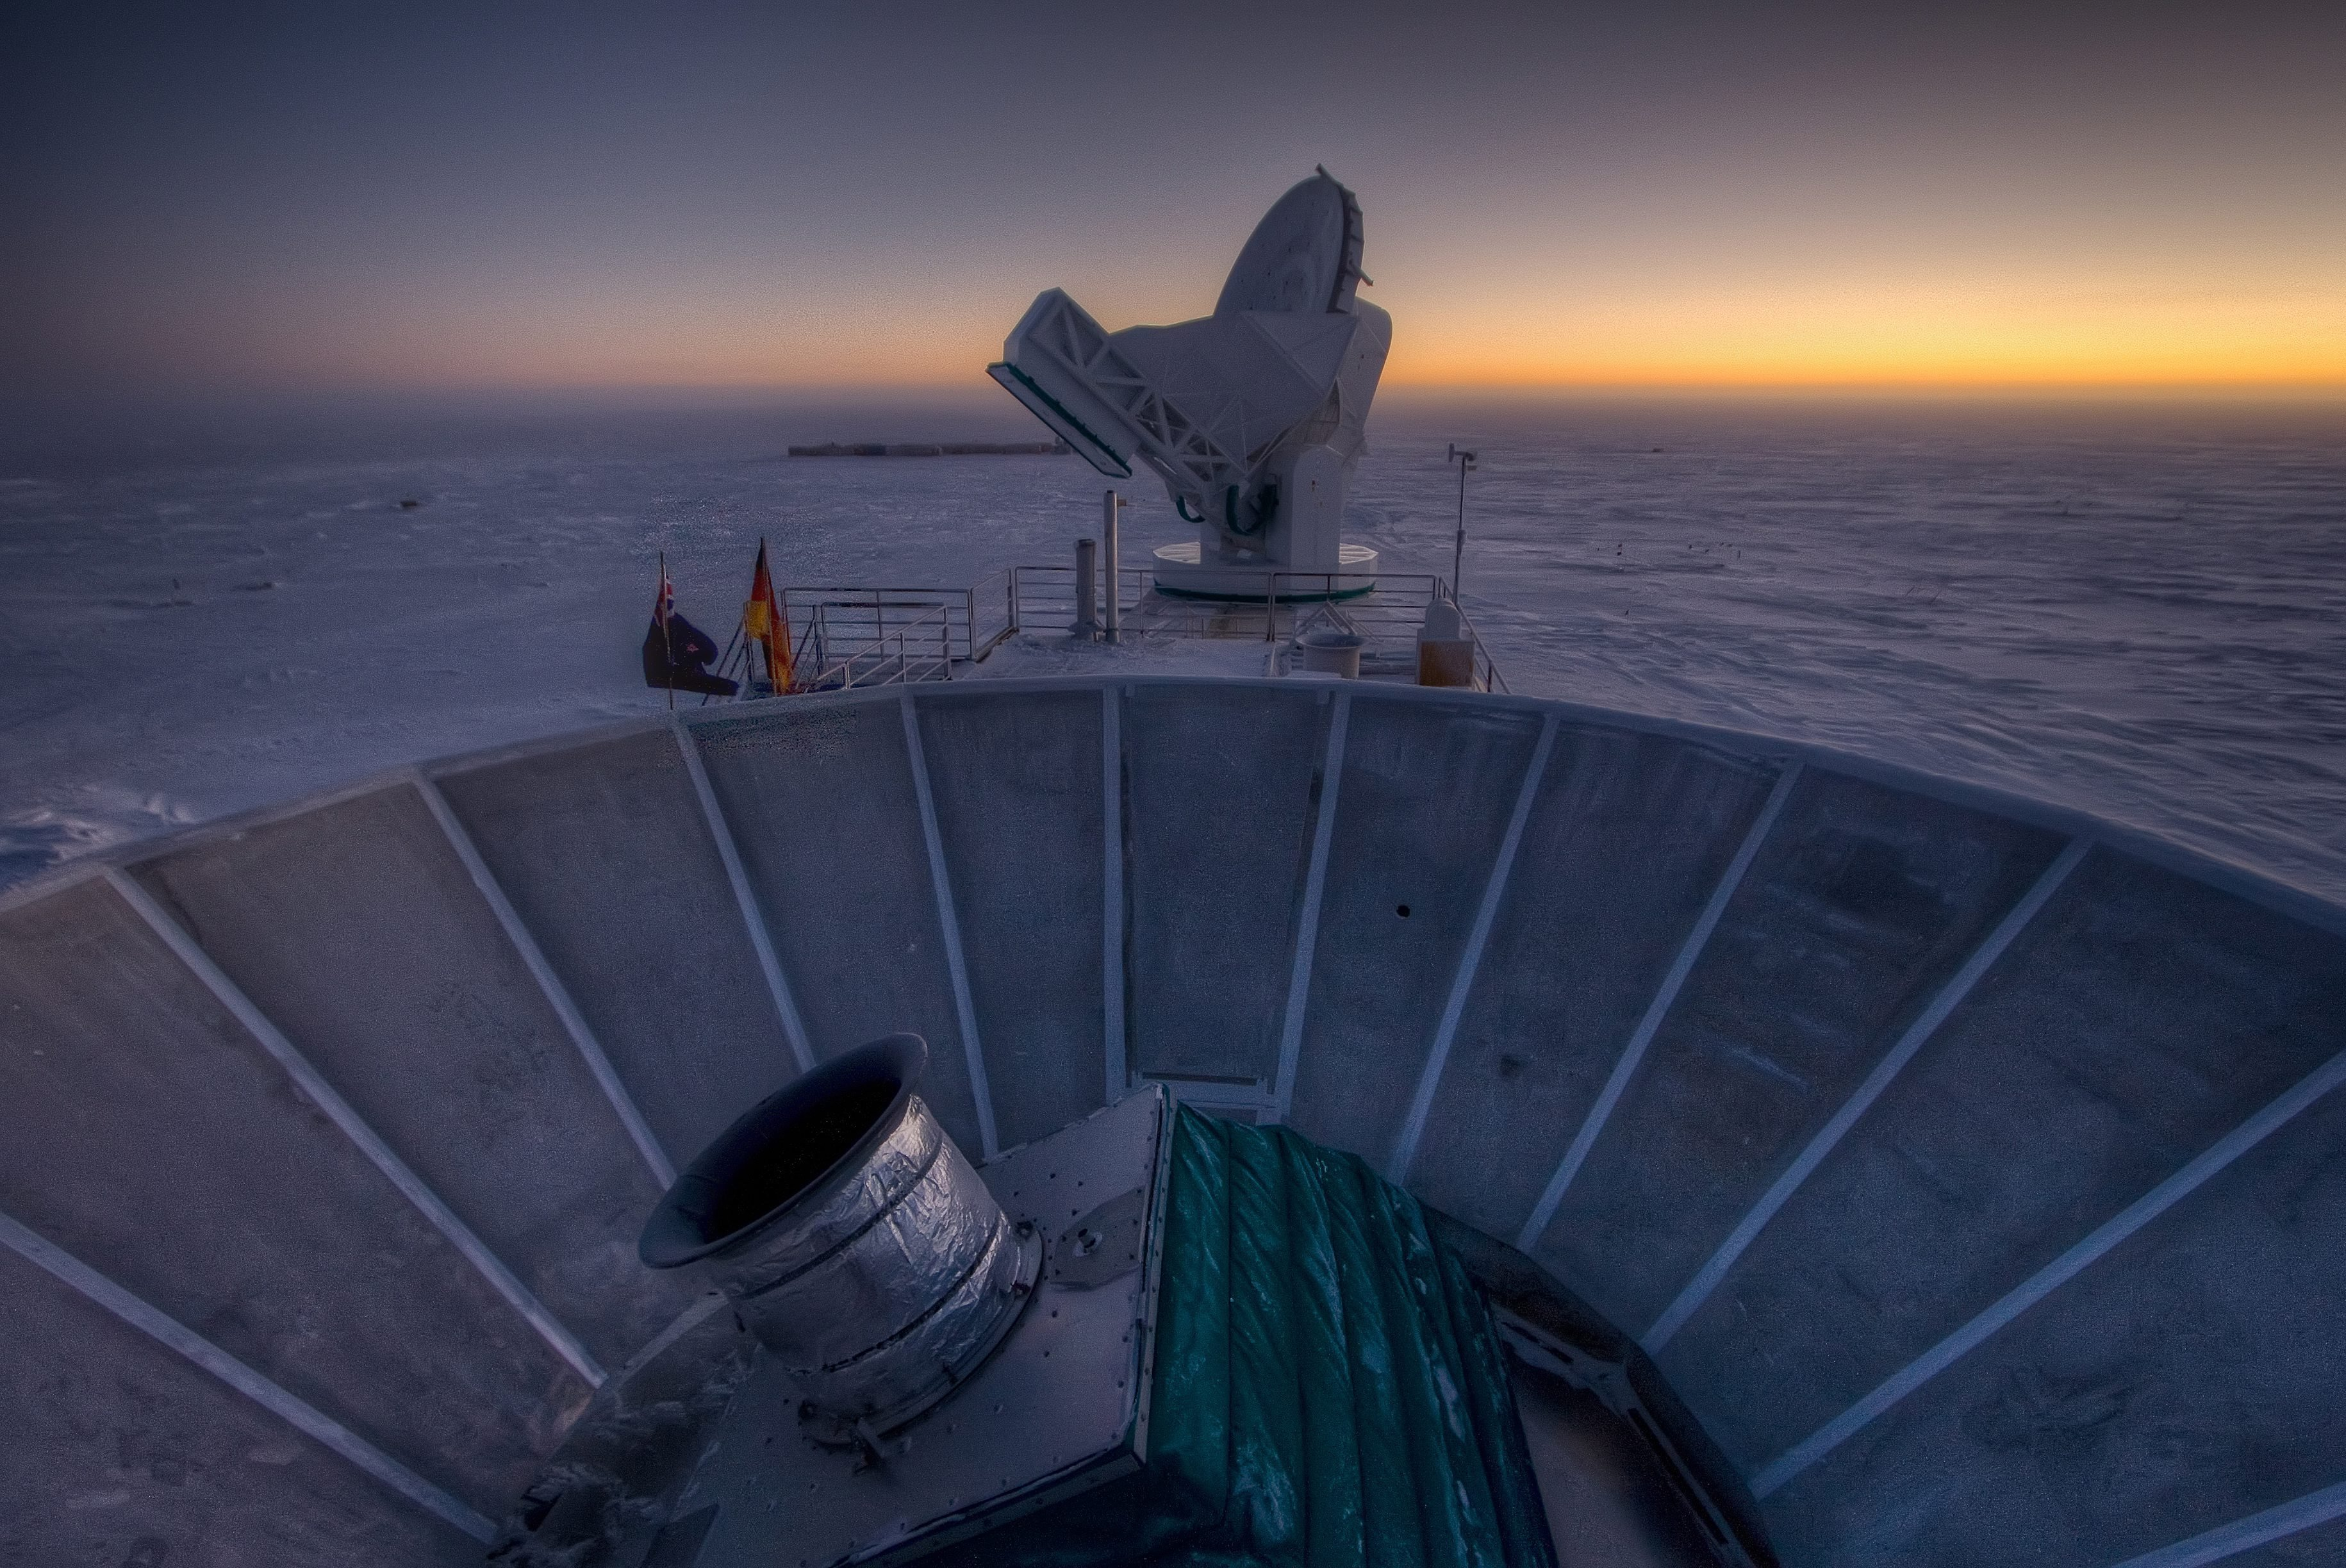 Telescope BICEP2 (in the foreground) and the South Pole Telescope (in the background) in Antarctica, on March 31, 2007.